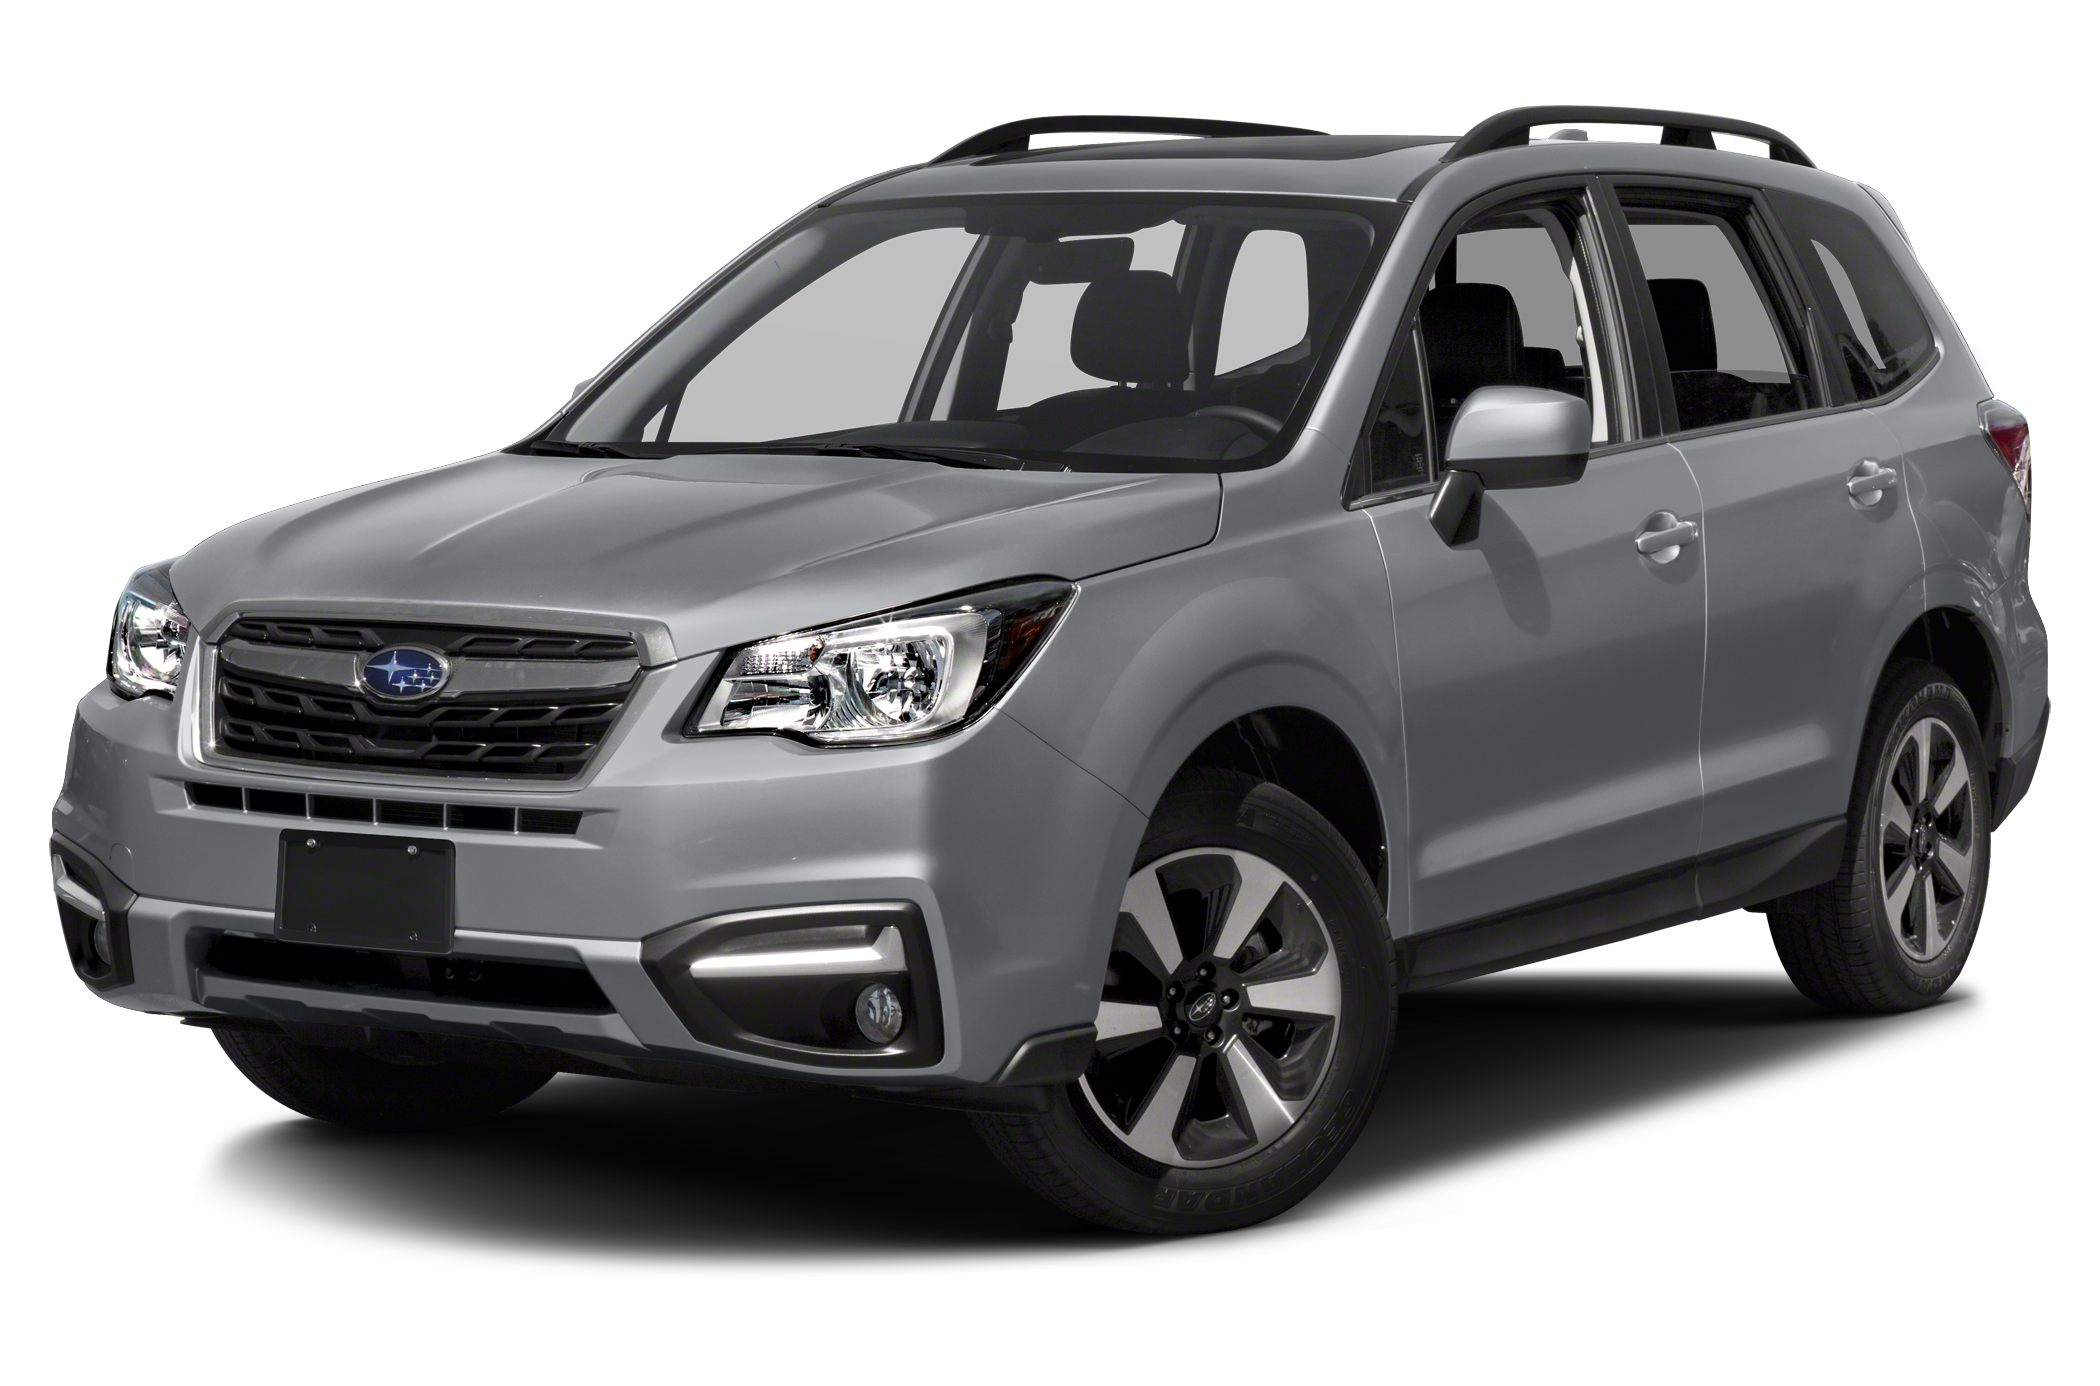 2017 Subaru Forester 25i Limited This 2017 Subaru Forester 4dr 25i Limited CVT features a 25L 4